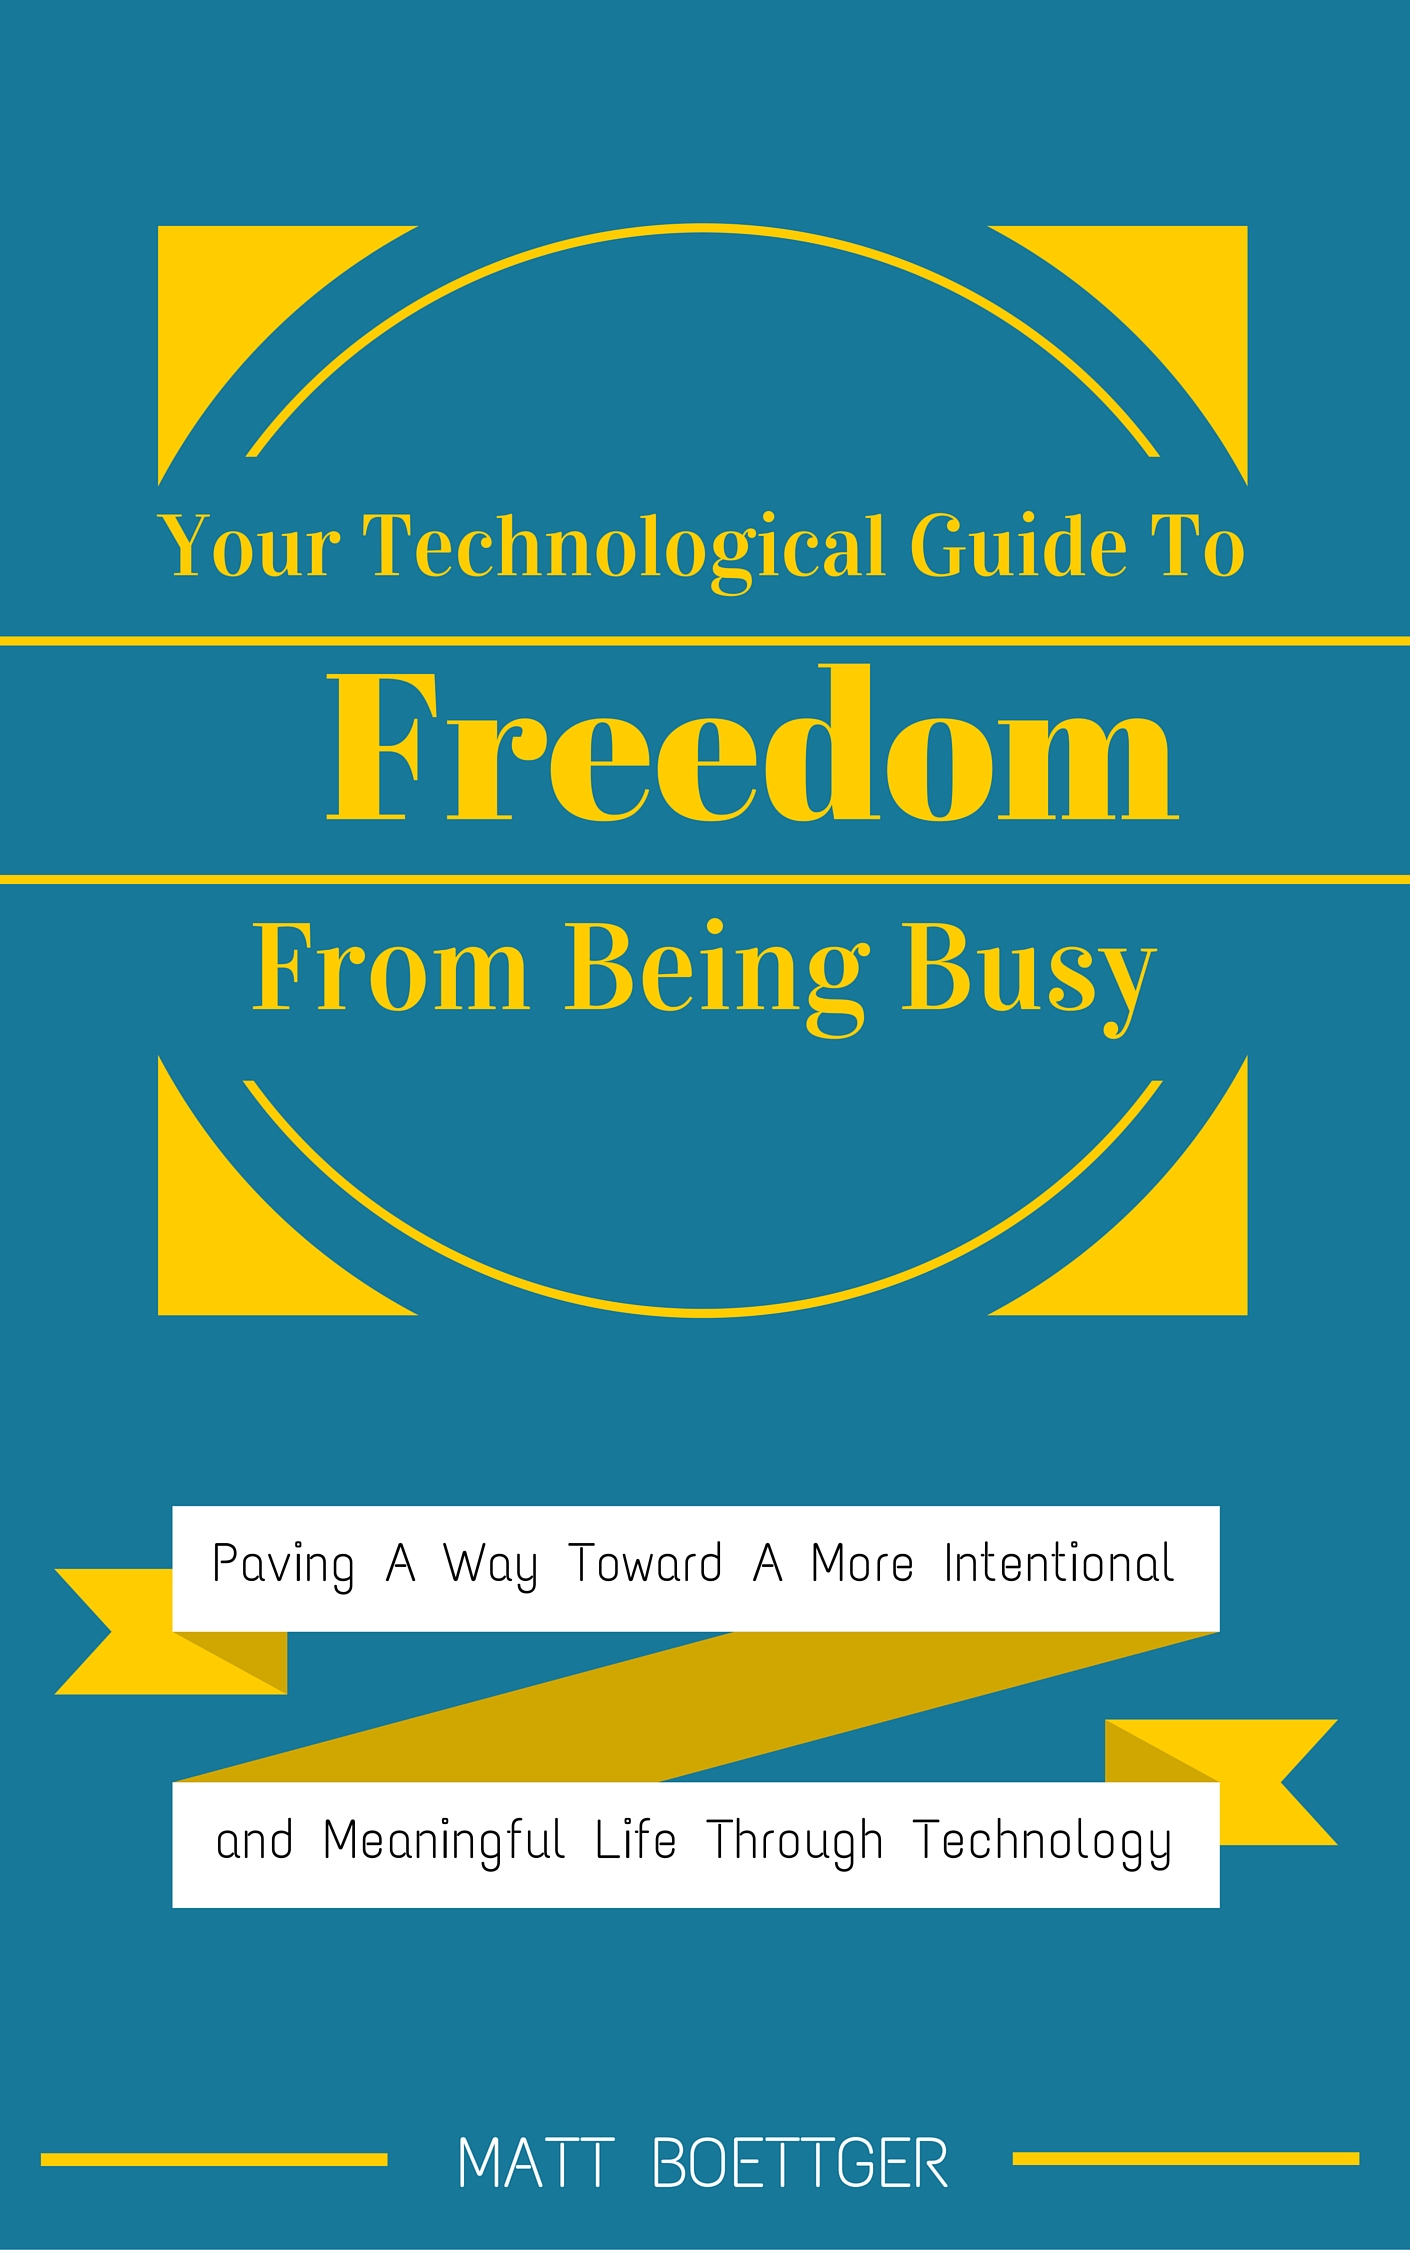 Technological Guide to Freedom From the Life of Busy